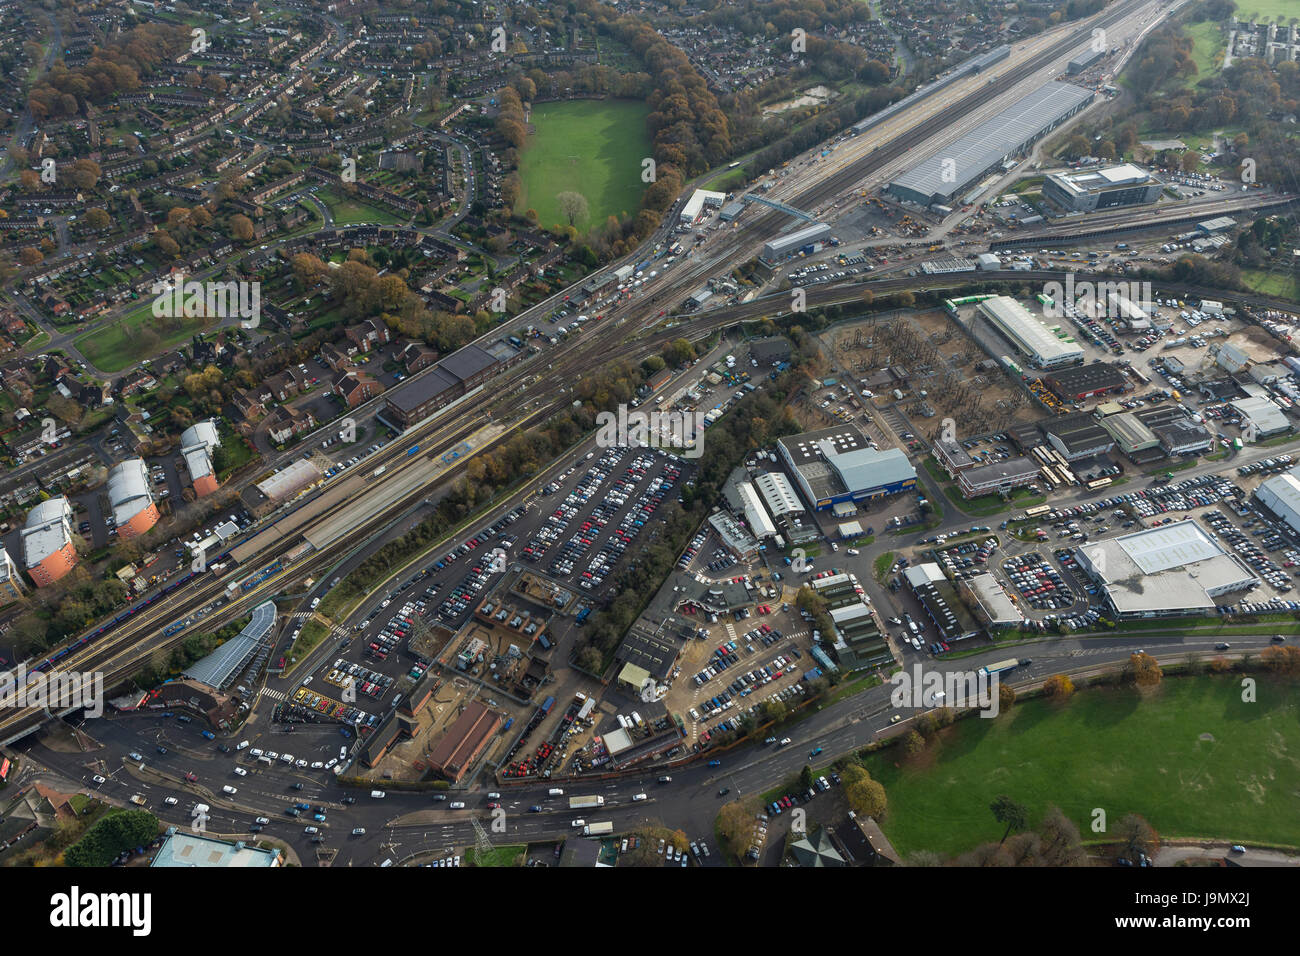 Siemens, Three Bridges Traincare Facility site, Crawley, West Sussex is over 1.4 miles in length and was built by - Stock Image